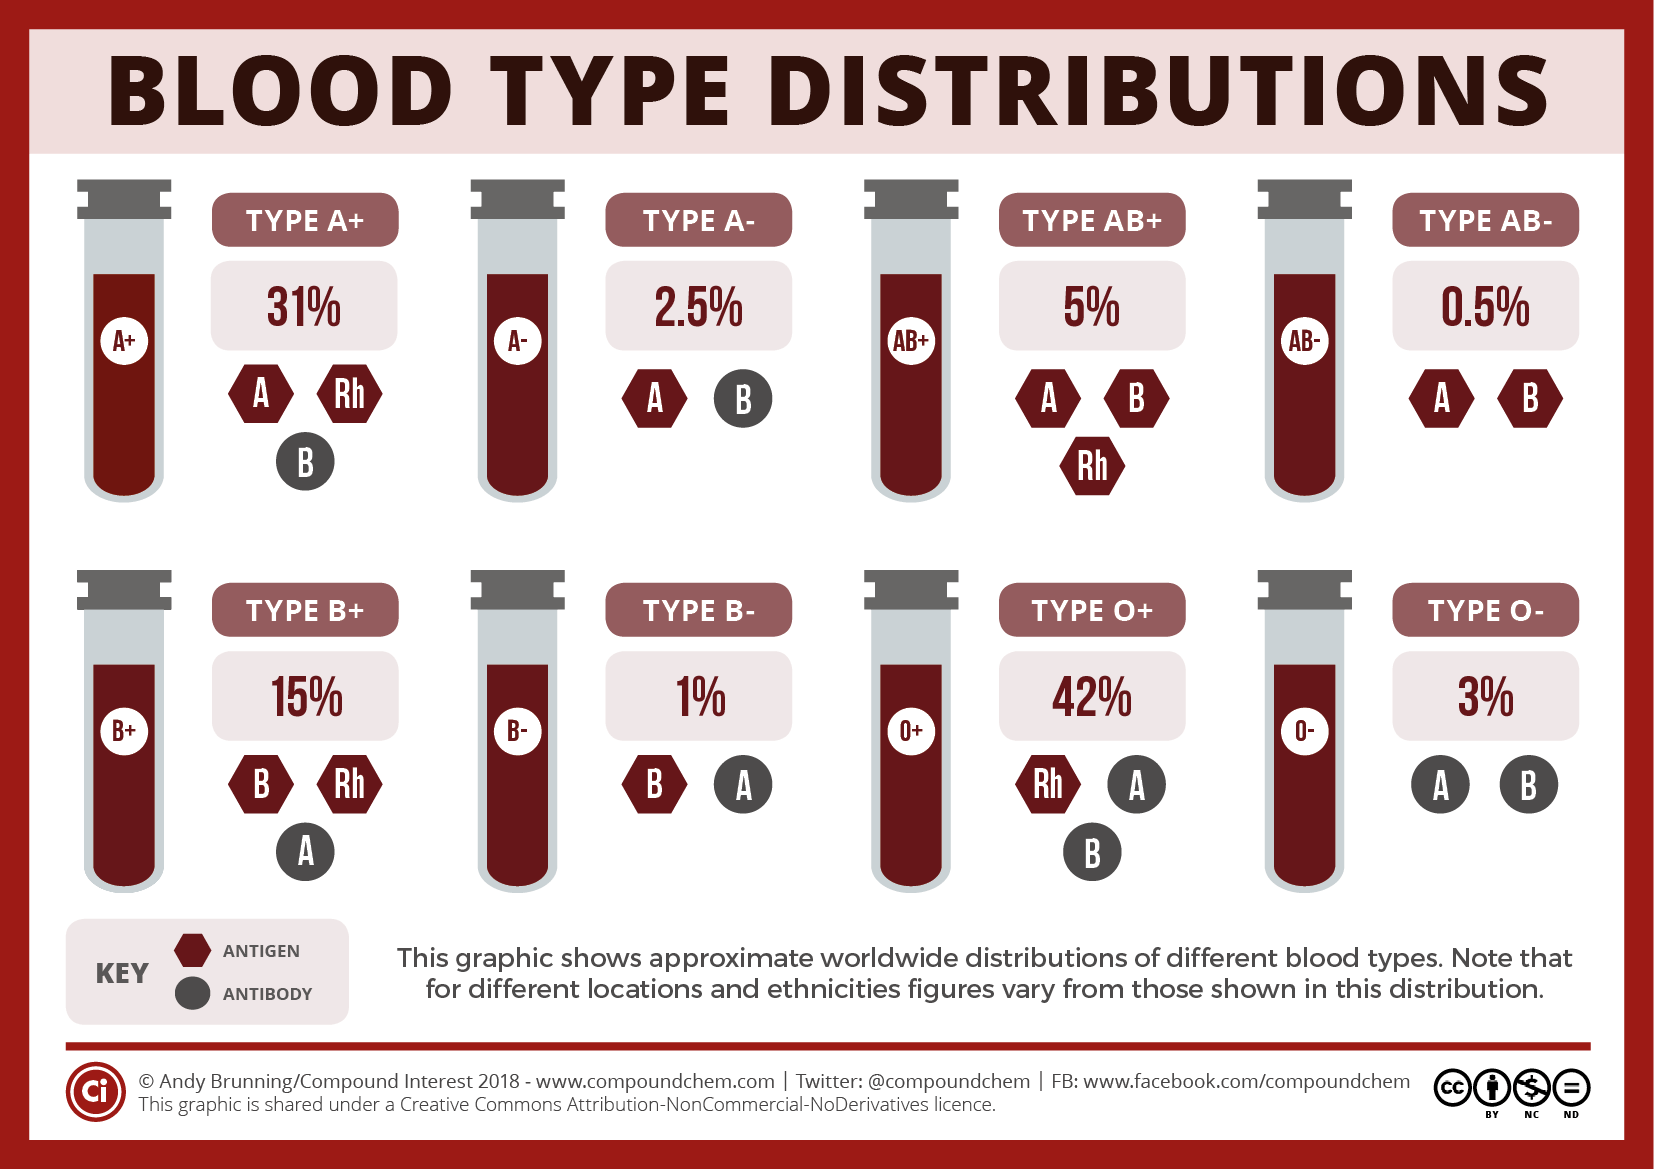 National Blood Donor Month: Blood type compatibilities